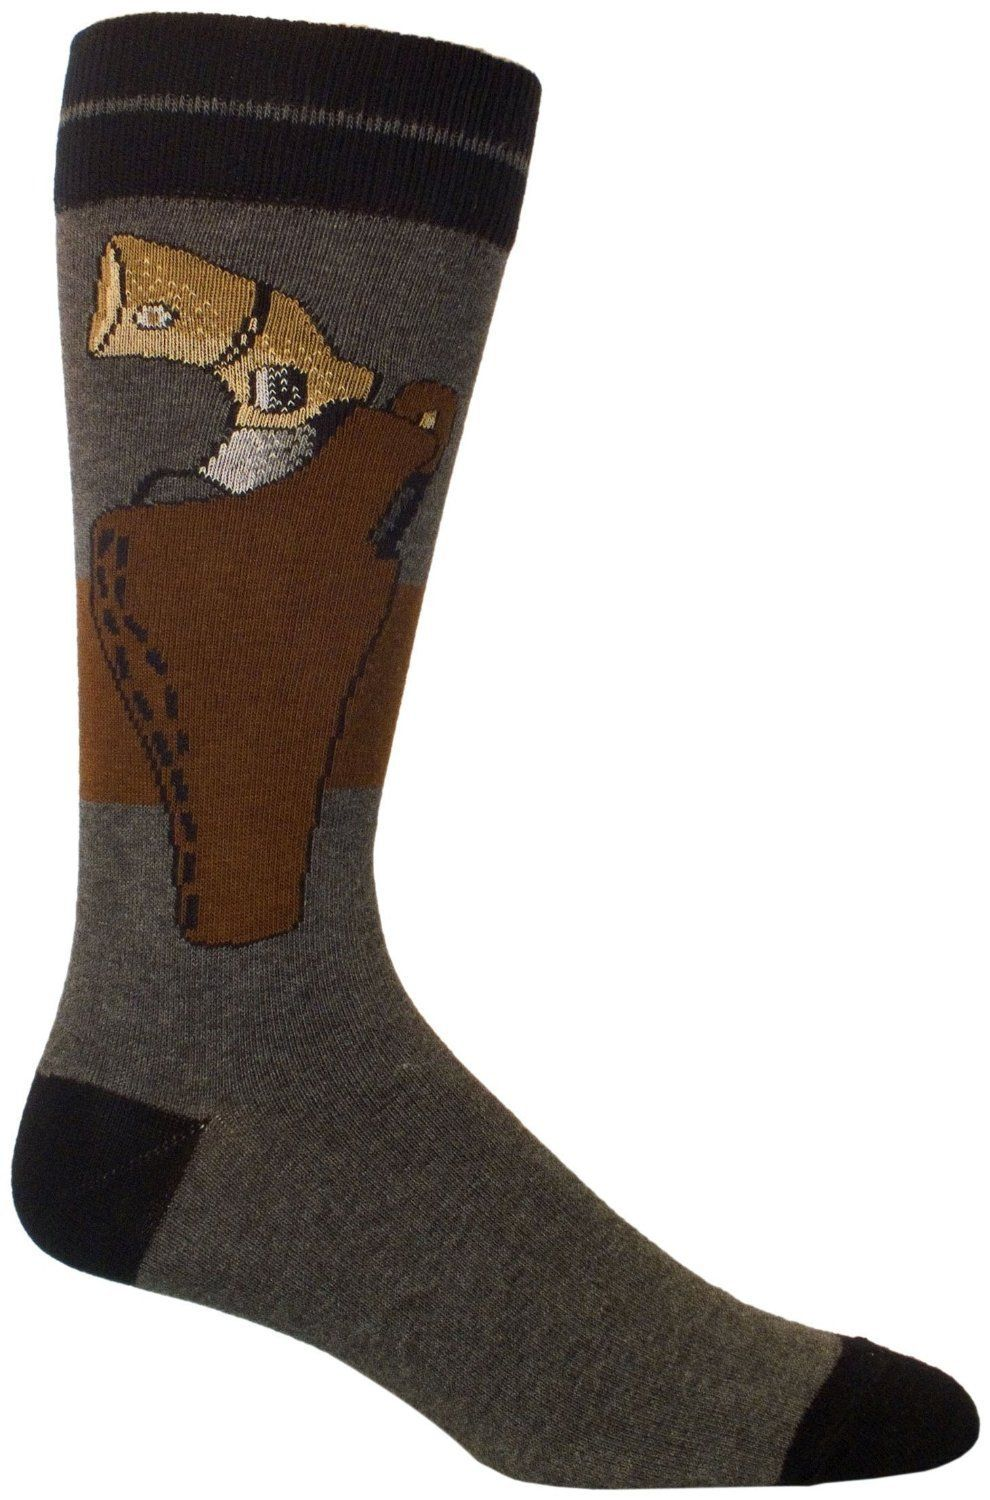 94d6cb517ca27 Concealed Carry Socks - Great Gifts for Gun Nuts